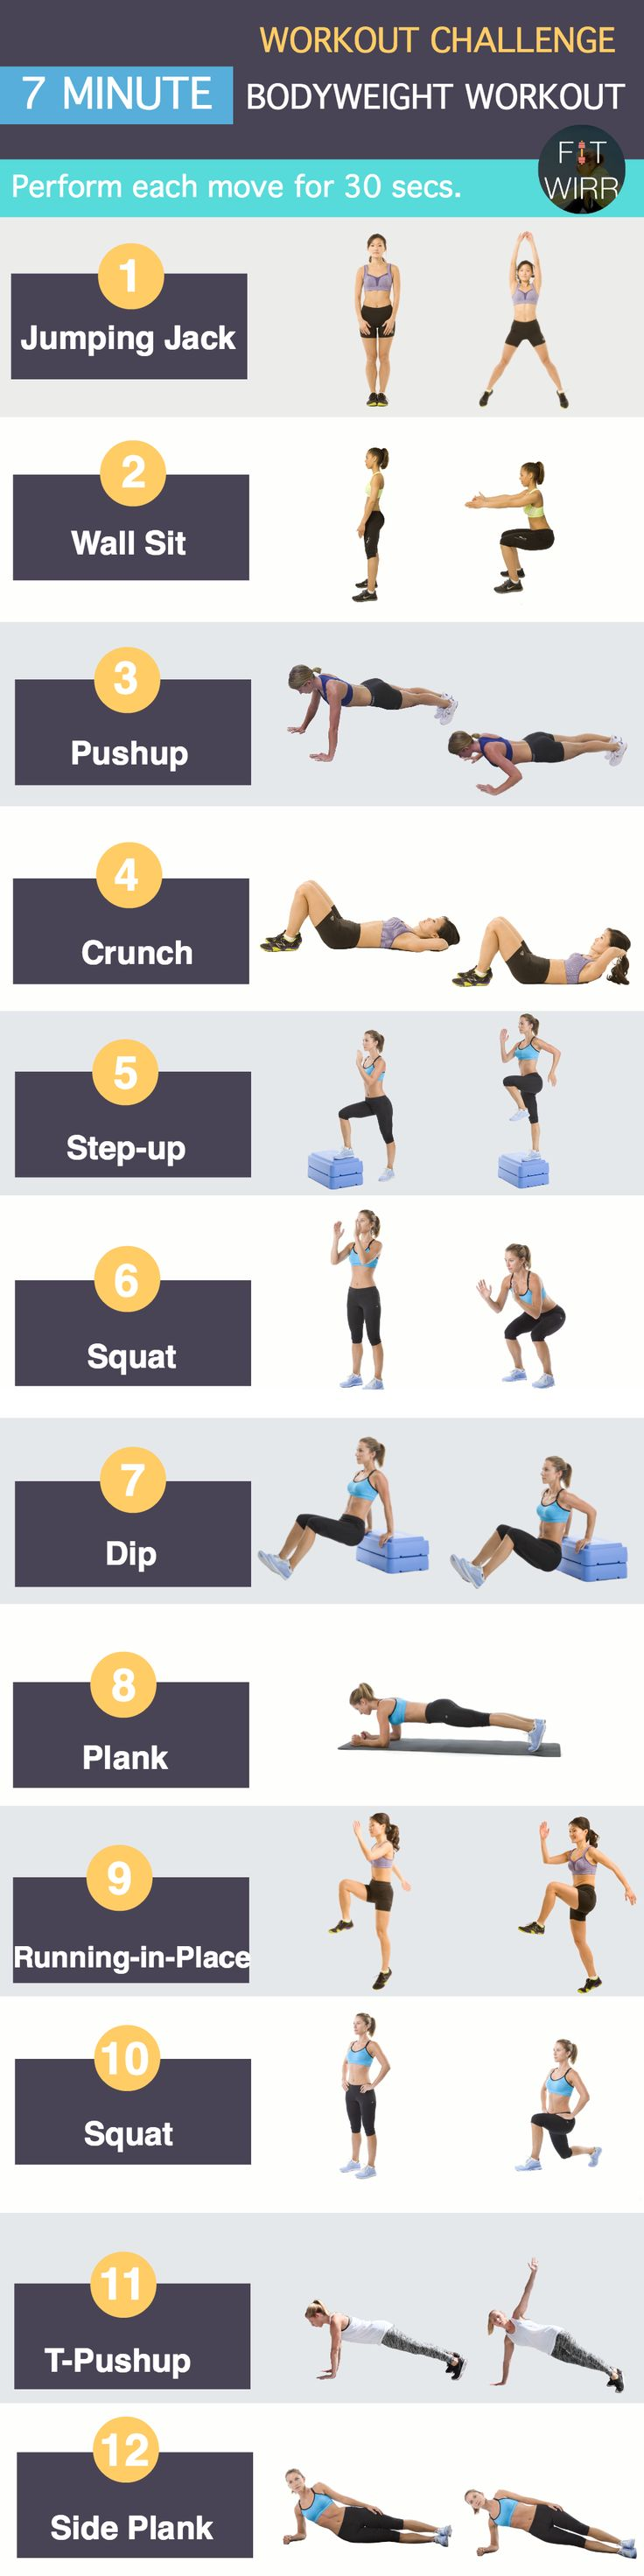 7 MINUTE of 12 EXERCISE BodyWeight HIIT Workout Routine... IS ALL U NEED... To BURN Calories.. During + AFTER your Workout... vs. 20-30 minutes to workout